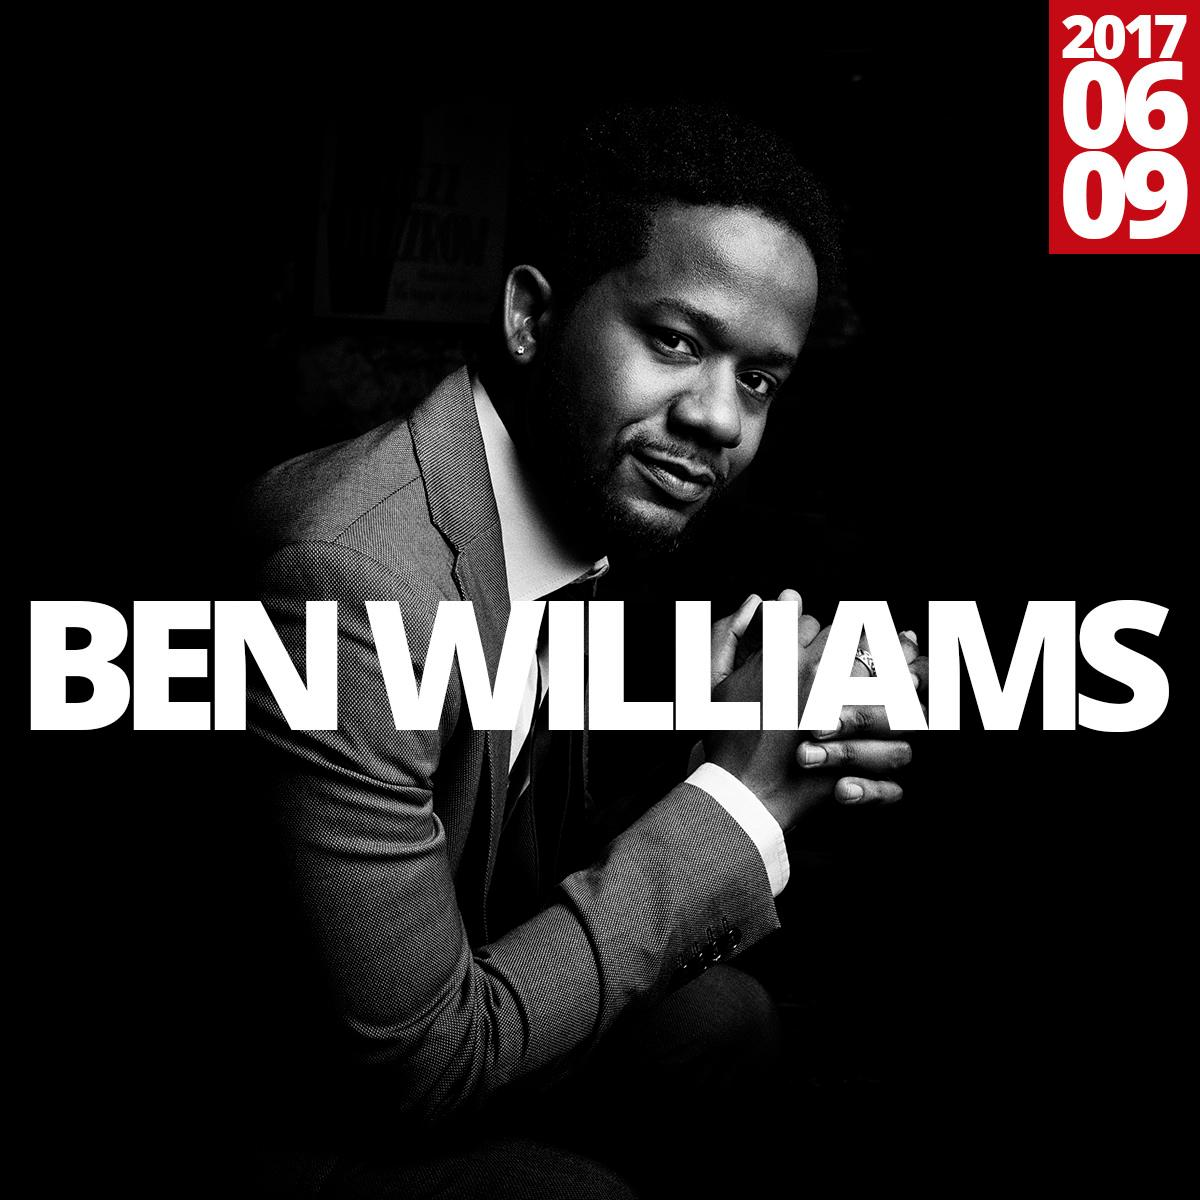 Ben Williams Concert, Budapest, 9 June